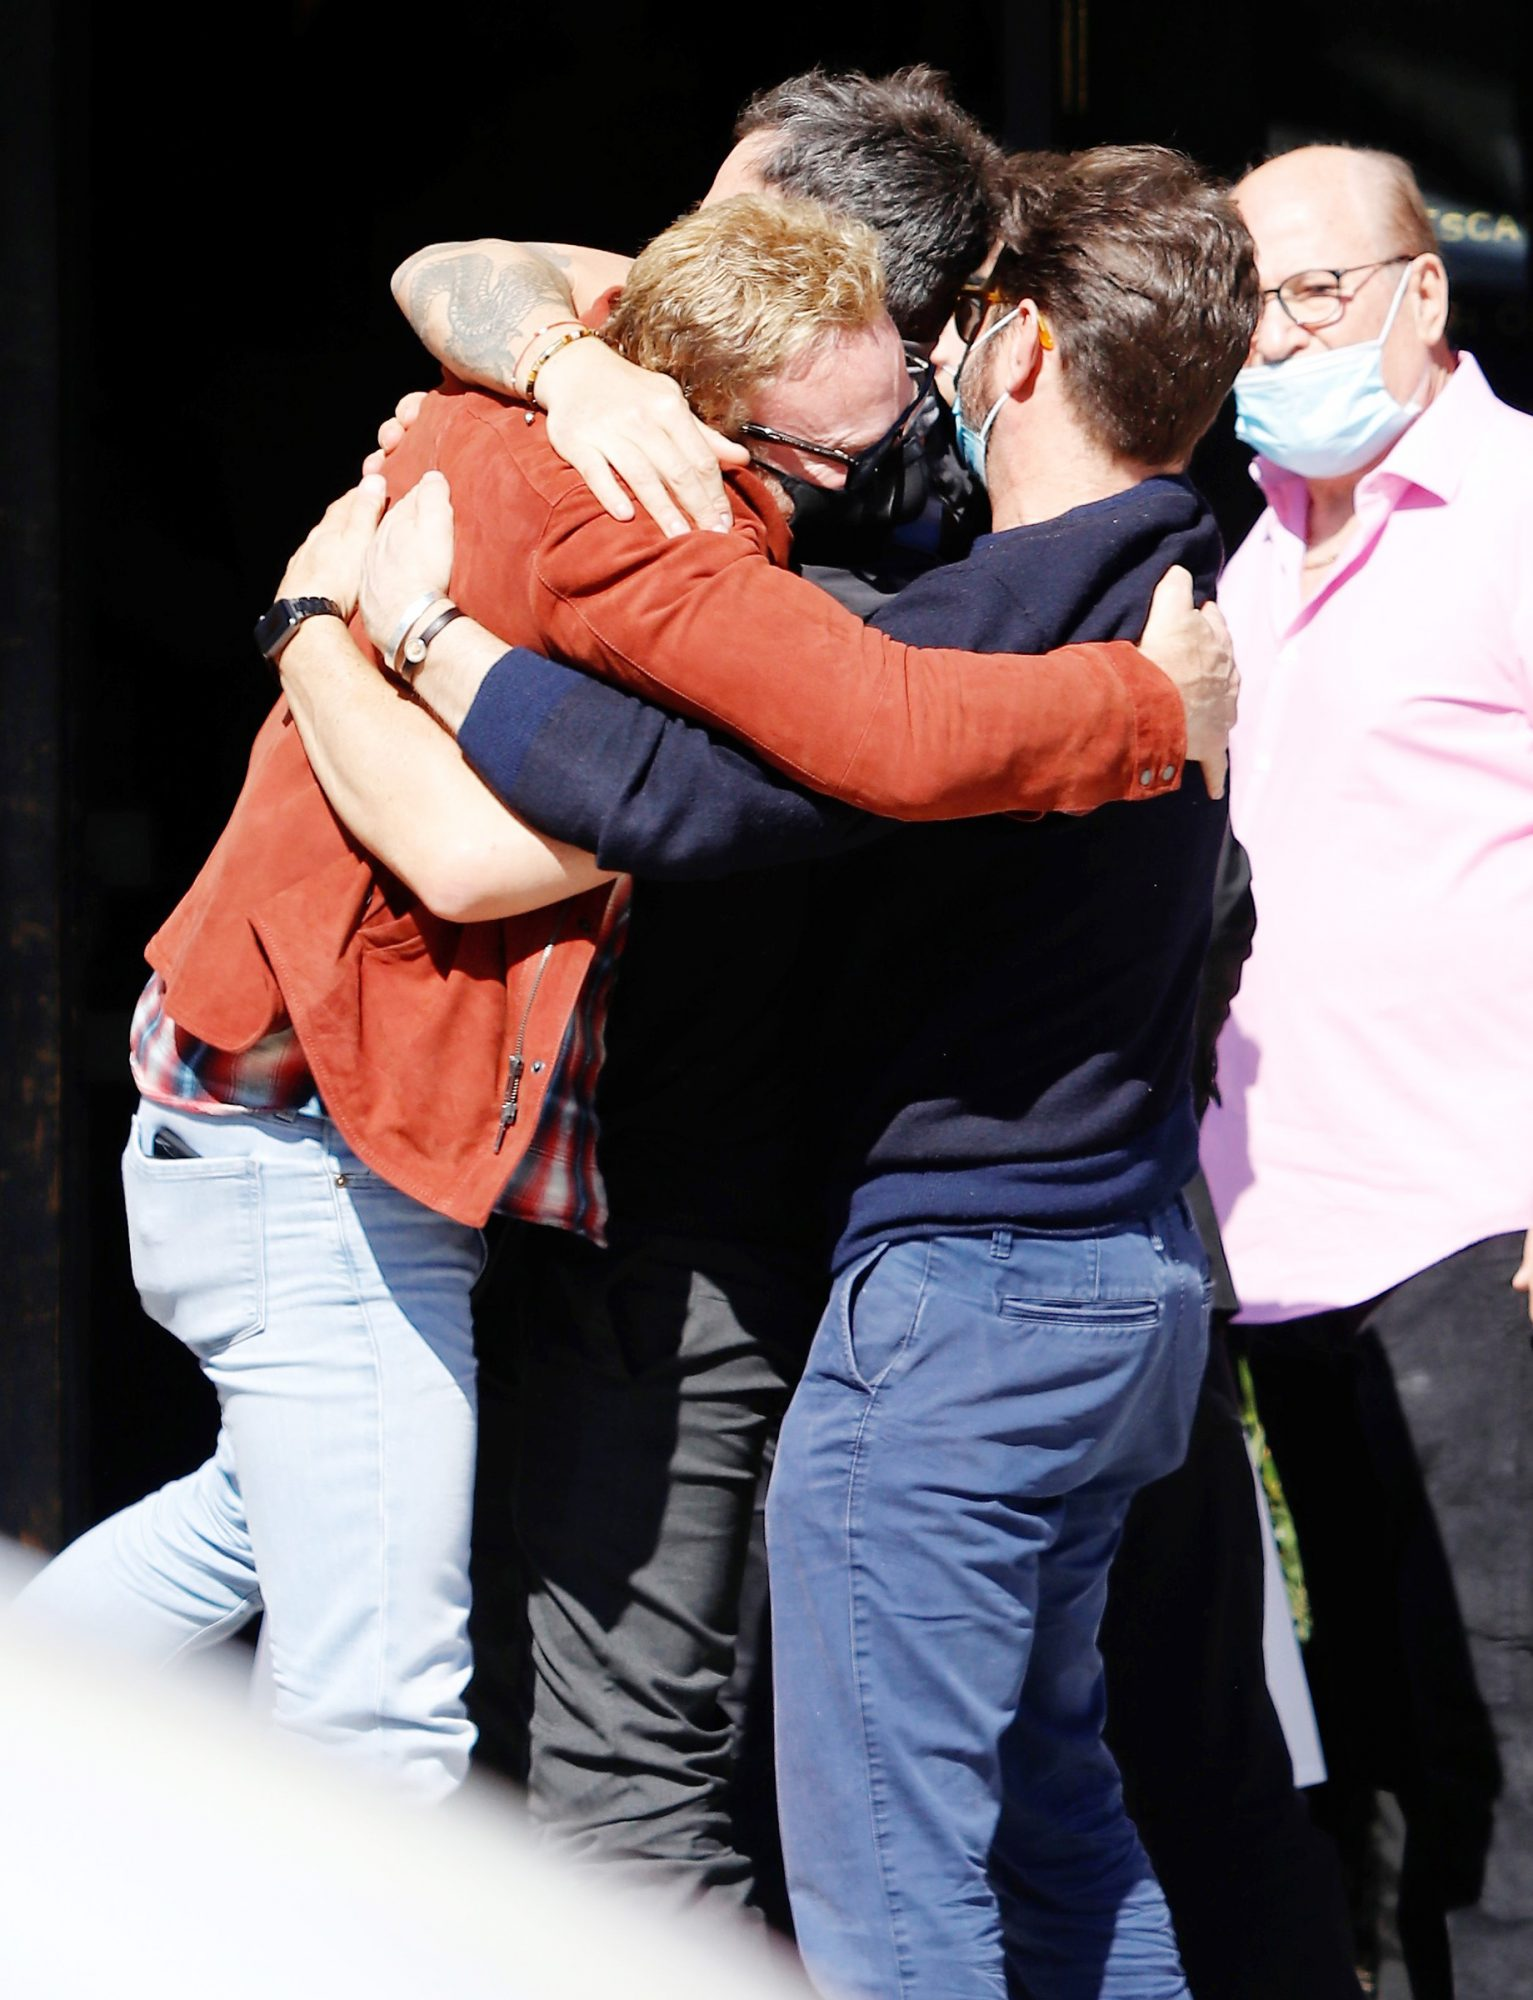 Jason Priestley, Ian Ziering and Brian Austin Green Have a Beverly Hills, 90210 Reunion in Los Angeles